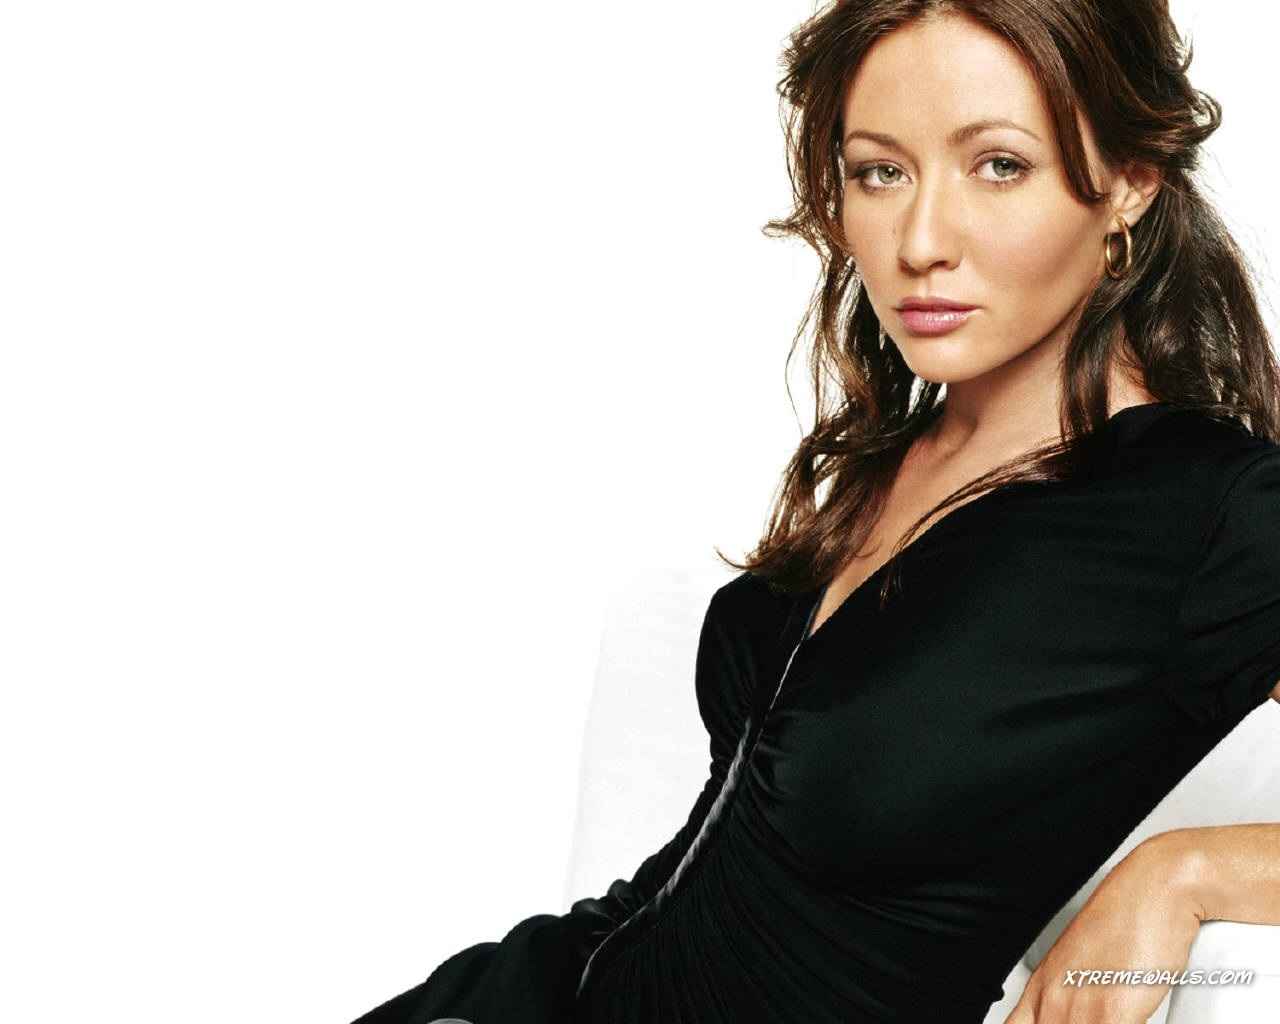 1280x1024 - Shannen Doherty Wallpapers 22